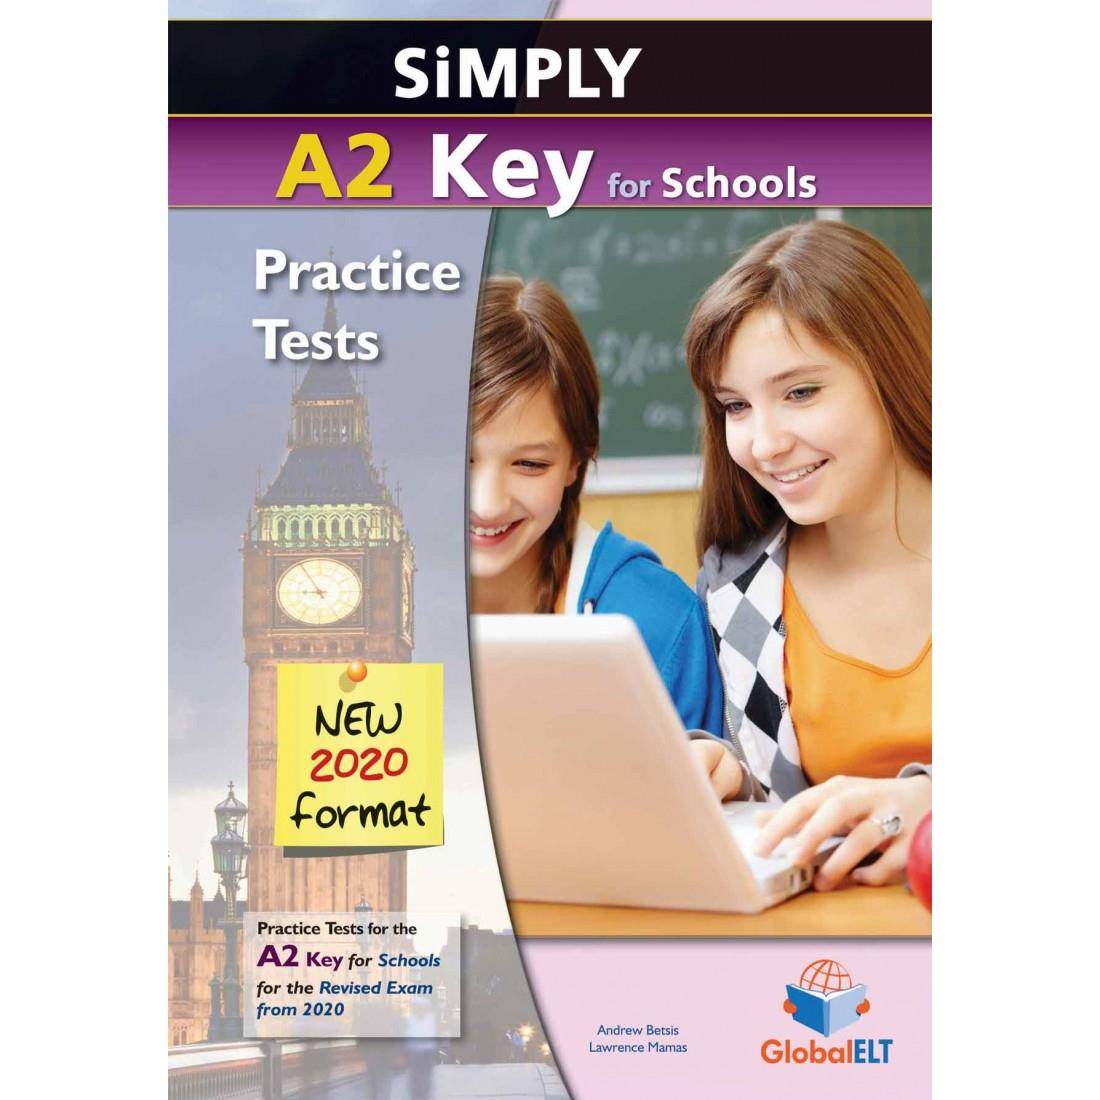 SIMPLY A2 KEY FOR SCHOOLS PRACTICE TESTS CD CLASS (3) NEW 2020 FORMAT